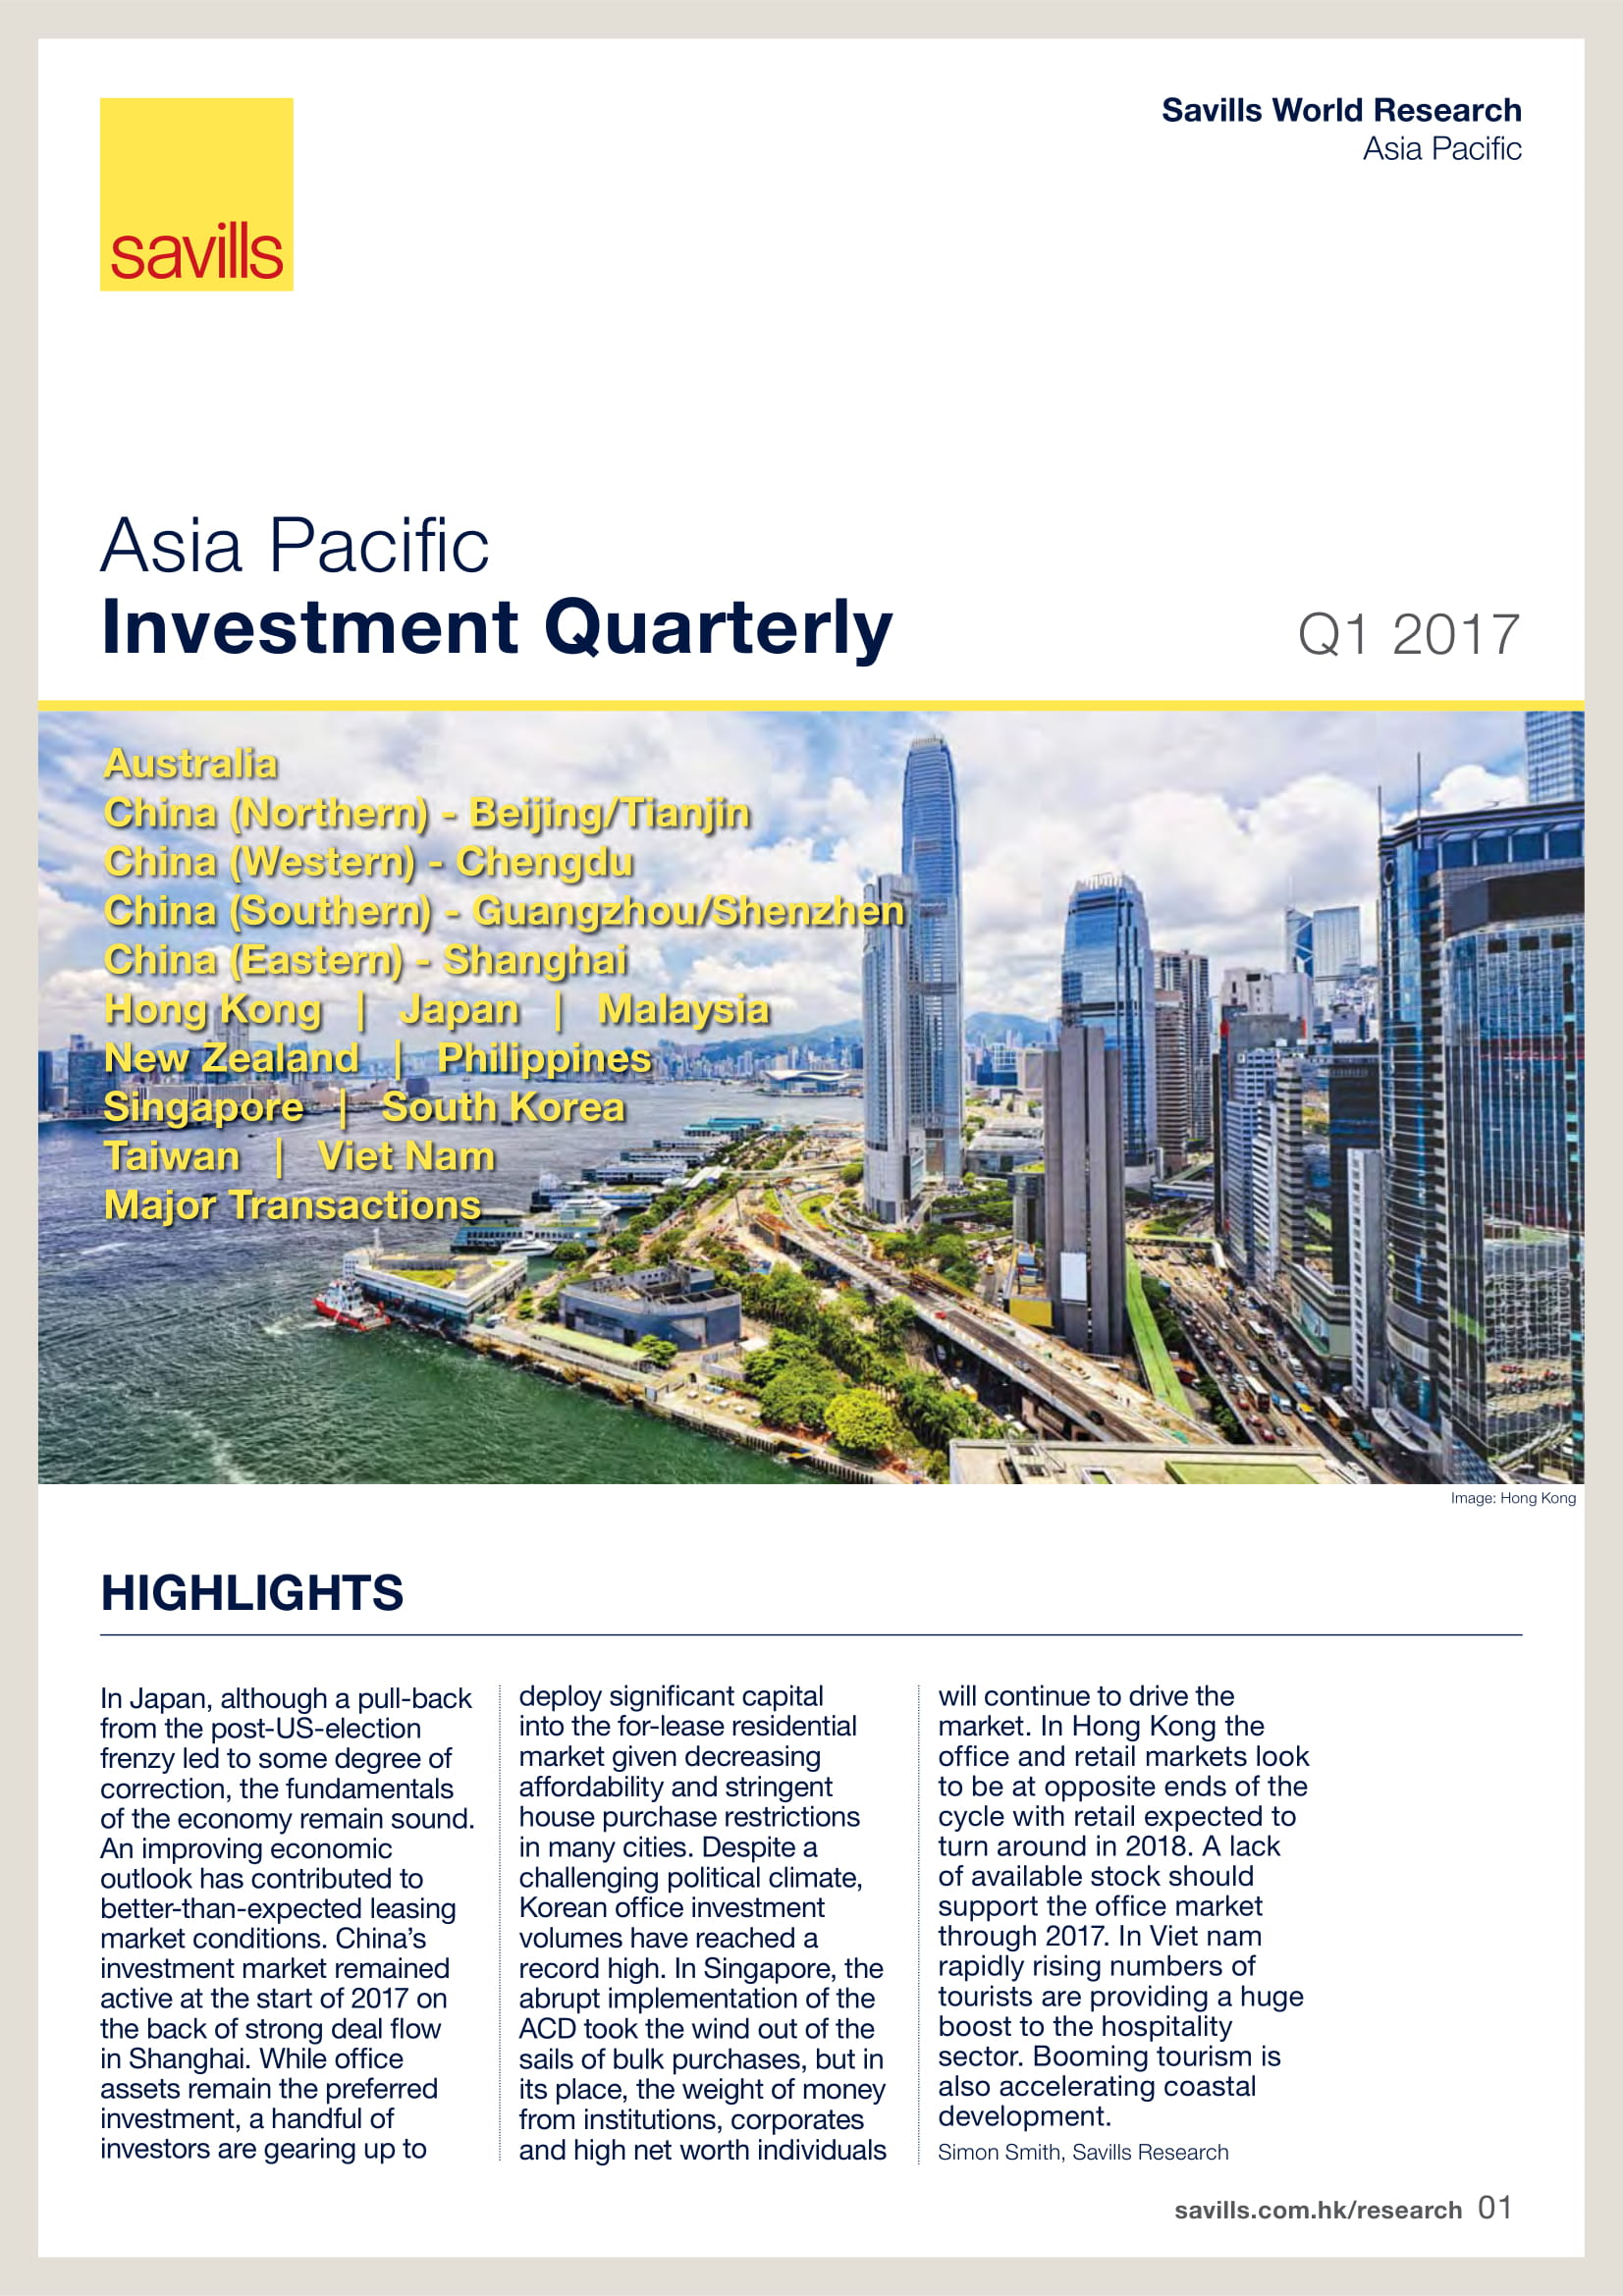 Asia Pacific Investment Quarterly Q1 2017